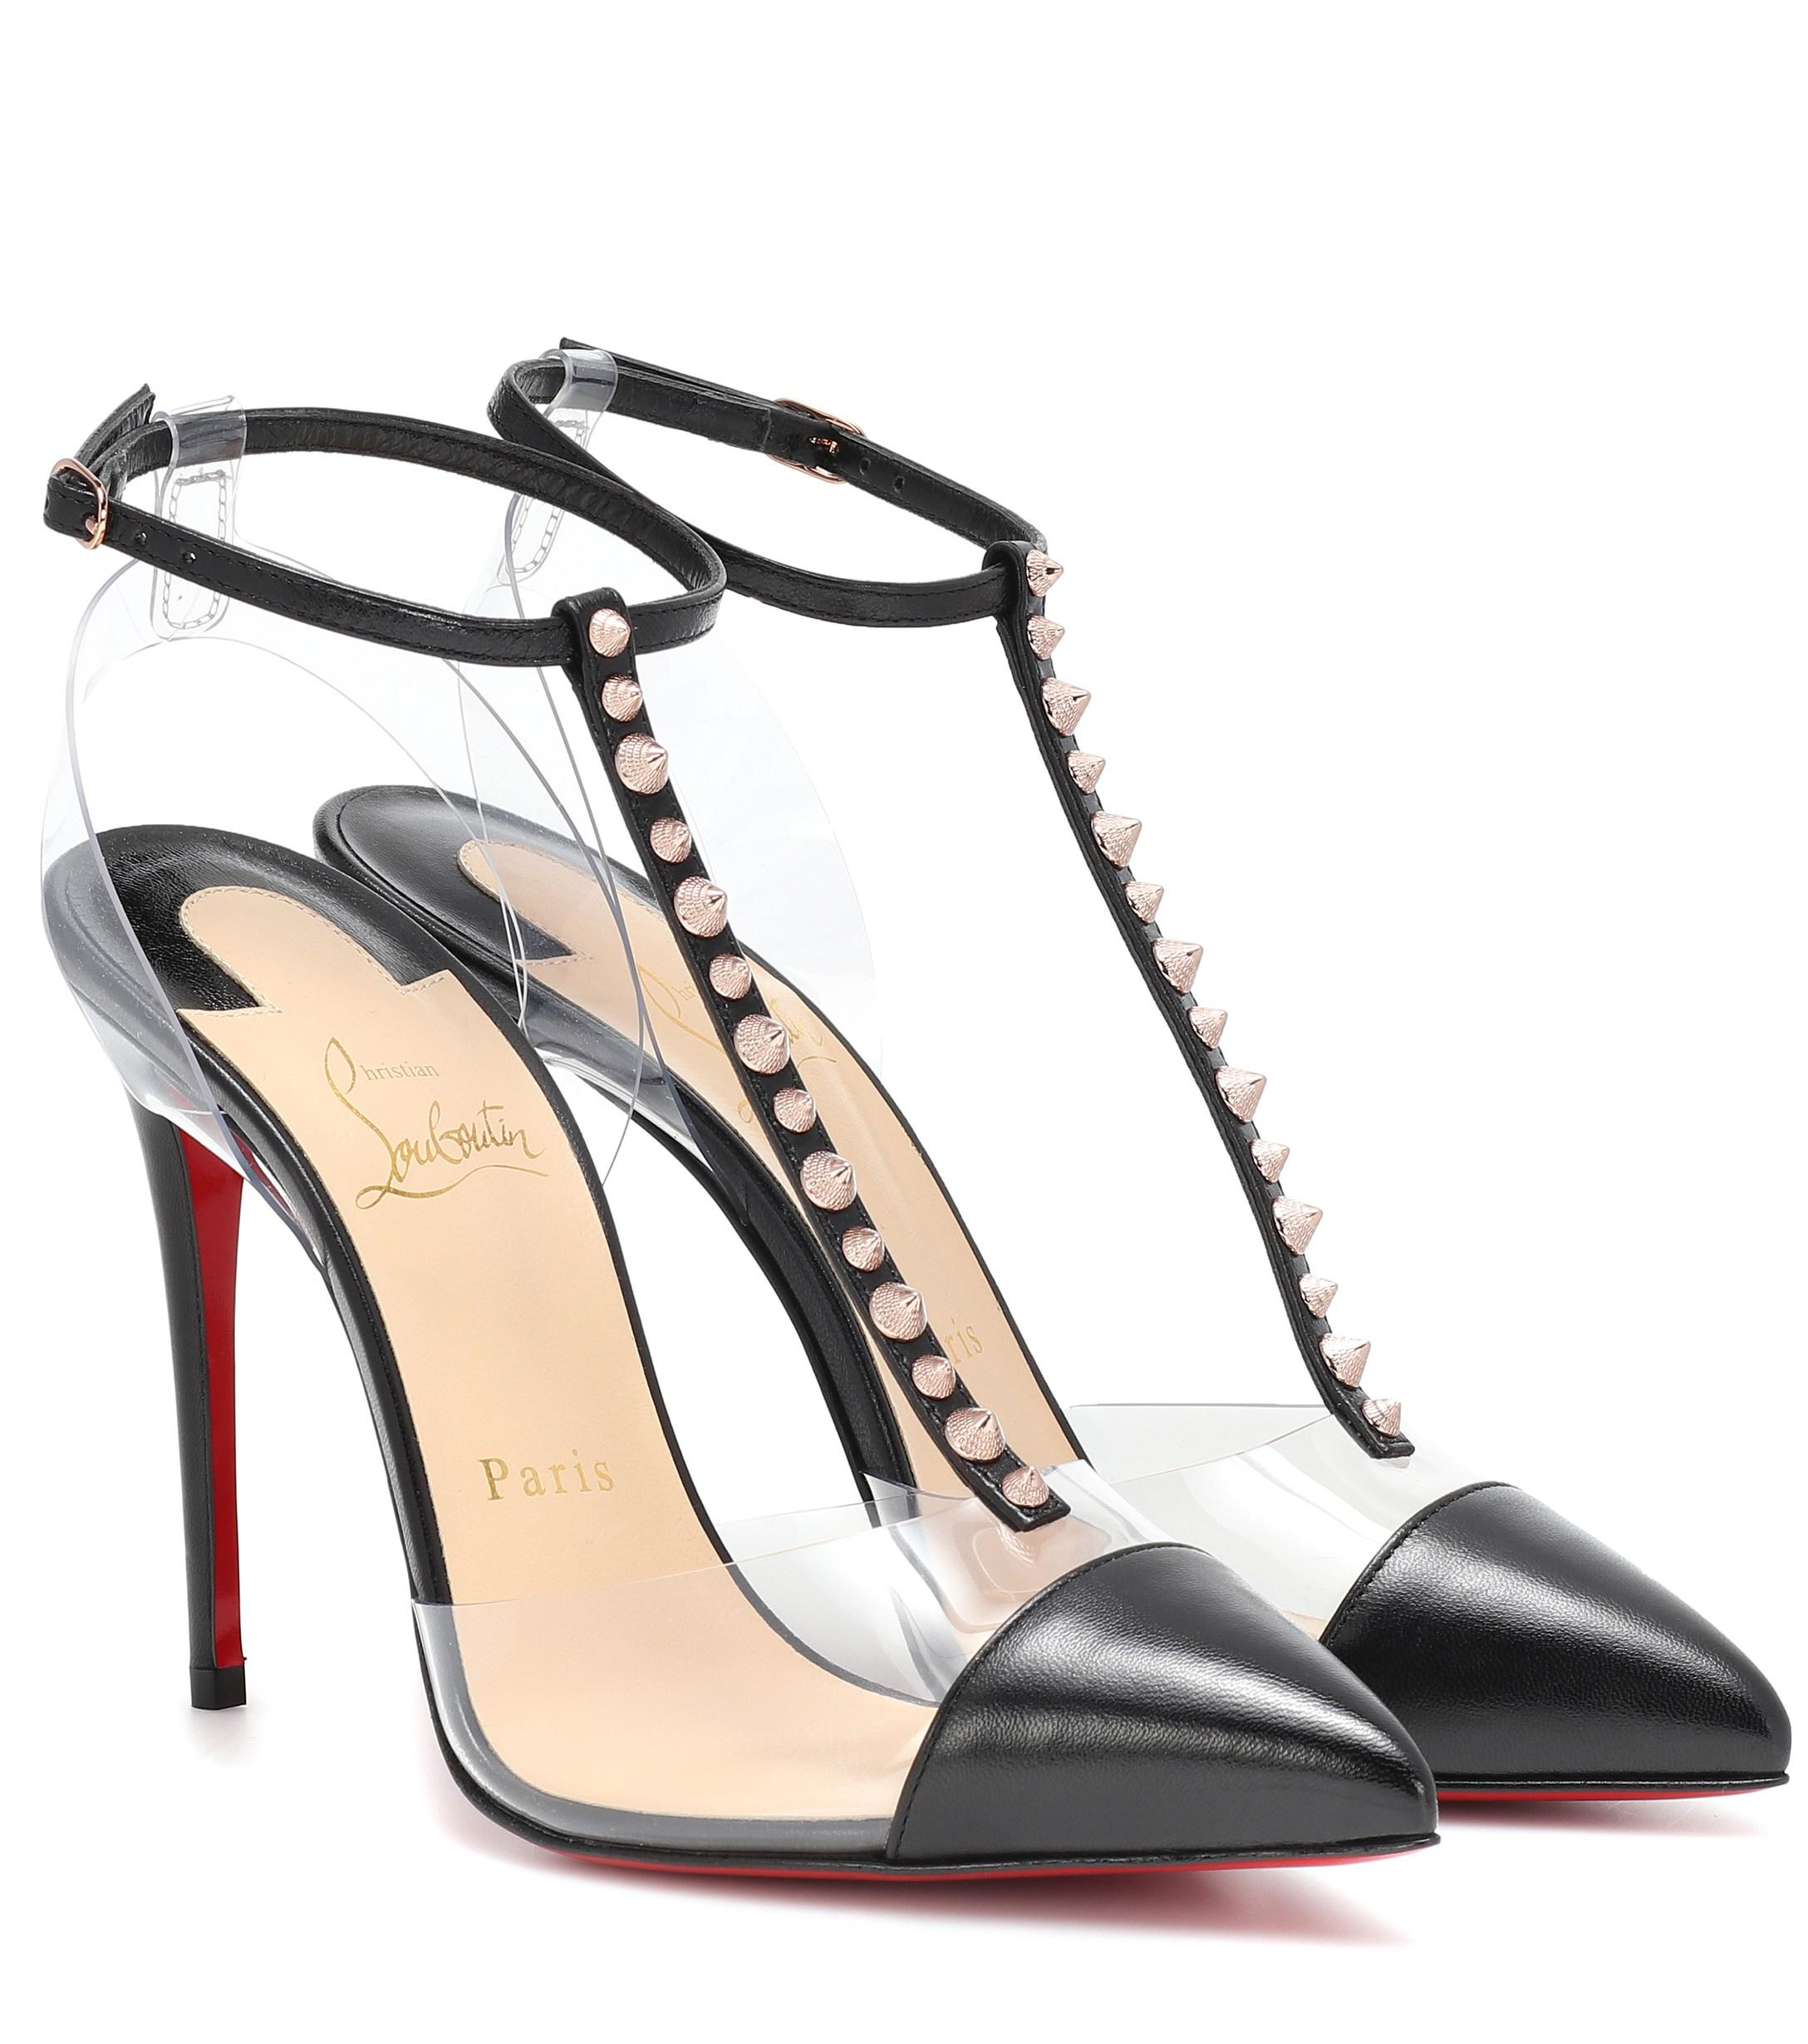 b72cd29eb0 Christian Louboutin Nosy Spikes Pvc And Leather Pumps in Black - Lyst